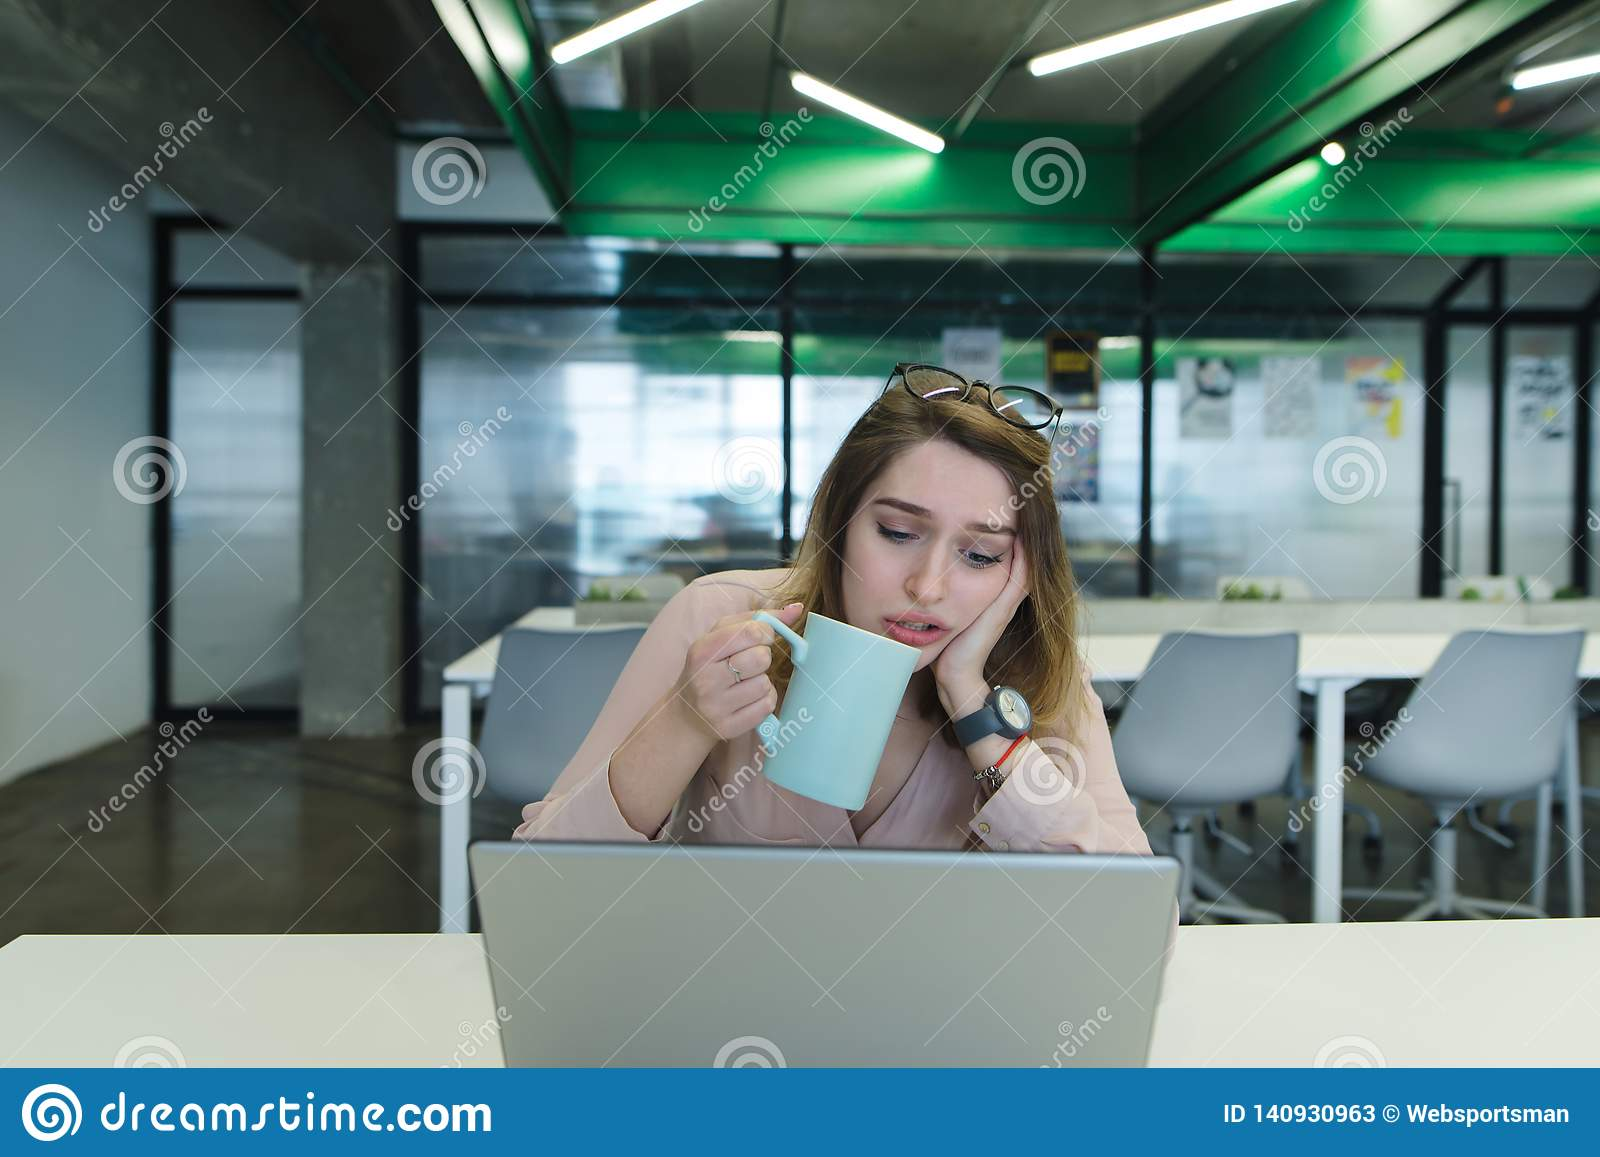 A sad girl with a cup of coffee in her hands uses a laptop on the desk in the office